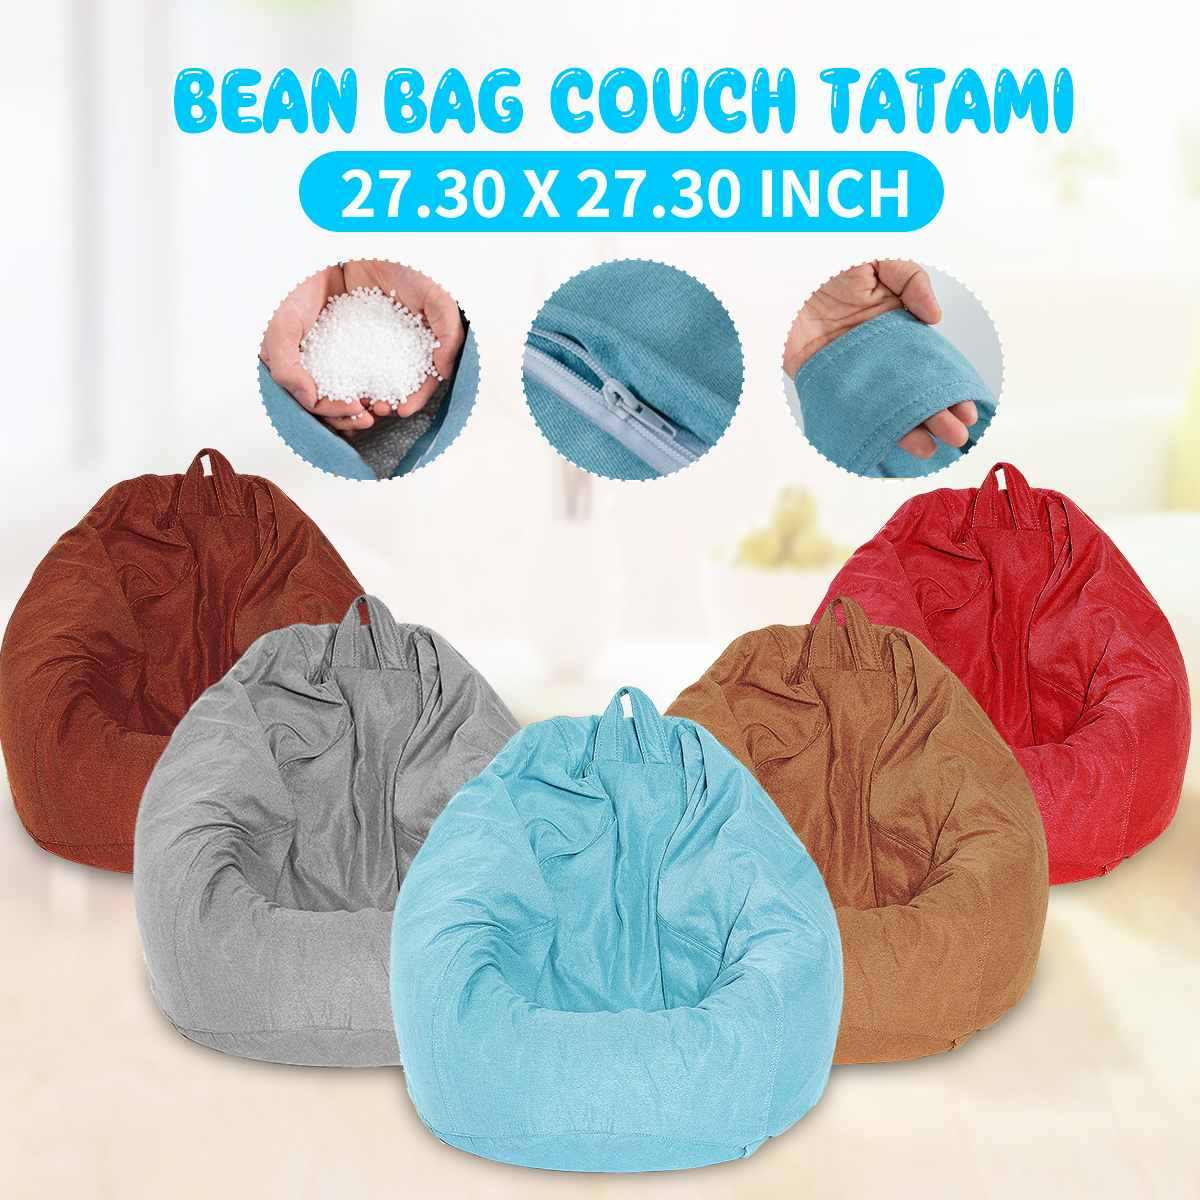 130*130cm Lazy Sofas Cover Chairs With Filler Linen Cloth Lounger Seat Bean Bag Pouf Puff Couch Tatami Living Room